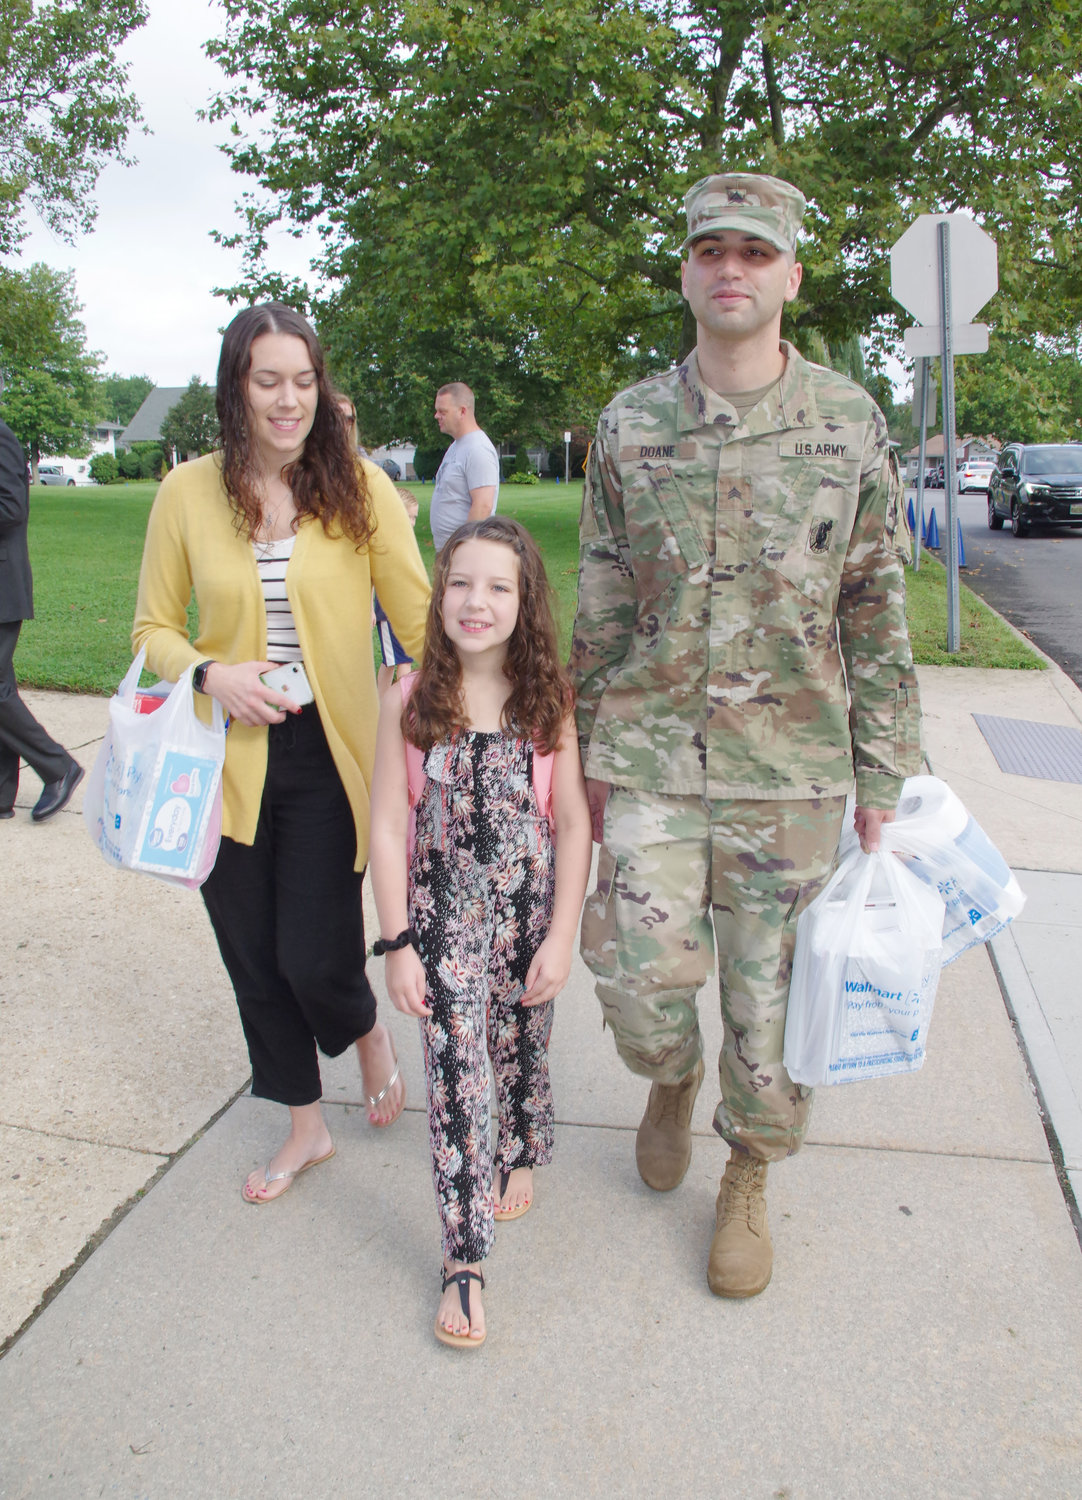 Delaney Doane, a second-grade student at Barnum Woods Elementary School, center, was with her parents Lyndsay, left and Michael on her first day of classes on Sept. 4.